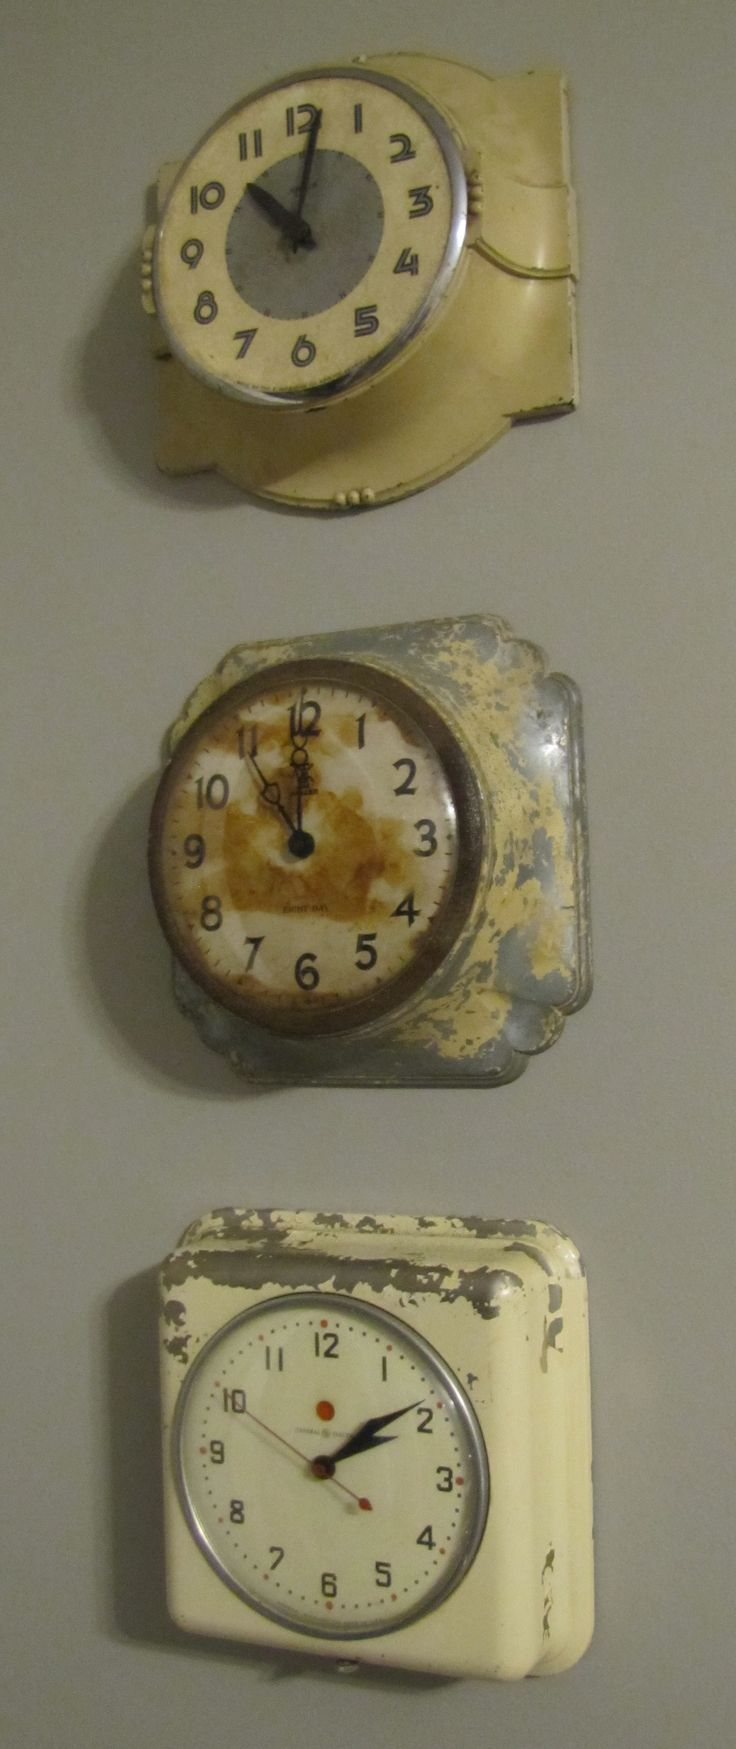 Amazing vintage clocks. love. And if the clocks are broken, why not put photos behind the glass and use them as frames?